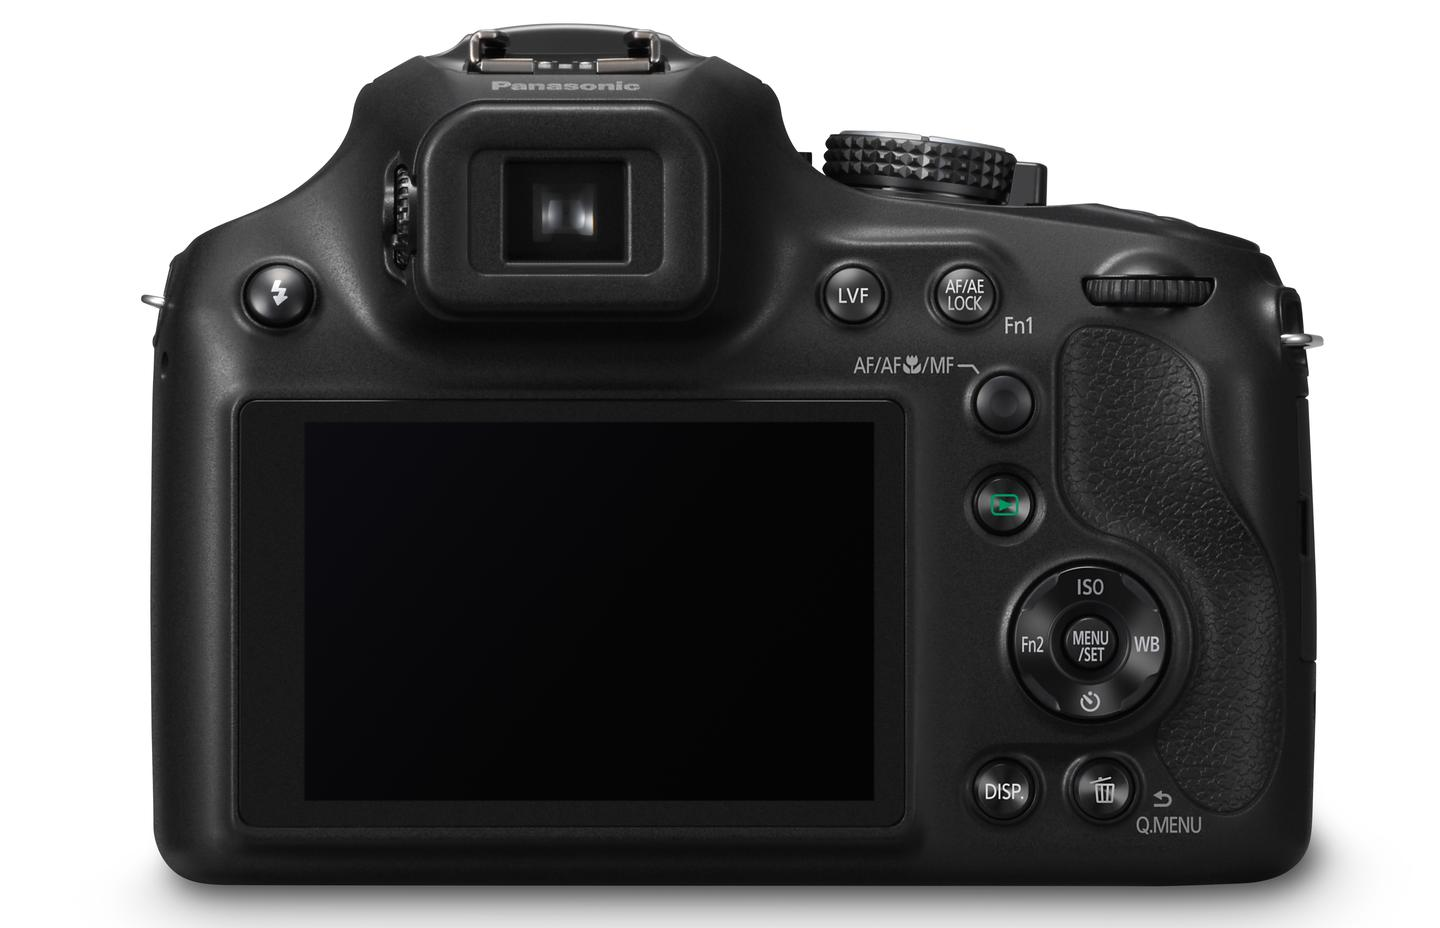 On the rear of the Panasonic Lumix DMC-FZ70 is a 3-inch monitor with 460K dots, and a 0.2-inch electronic viewfinder with a 202K dot equivalent resolution